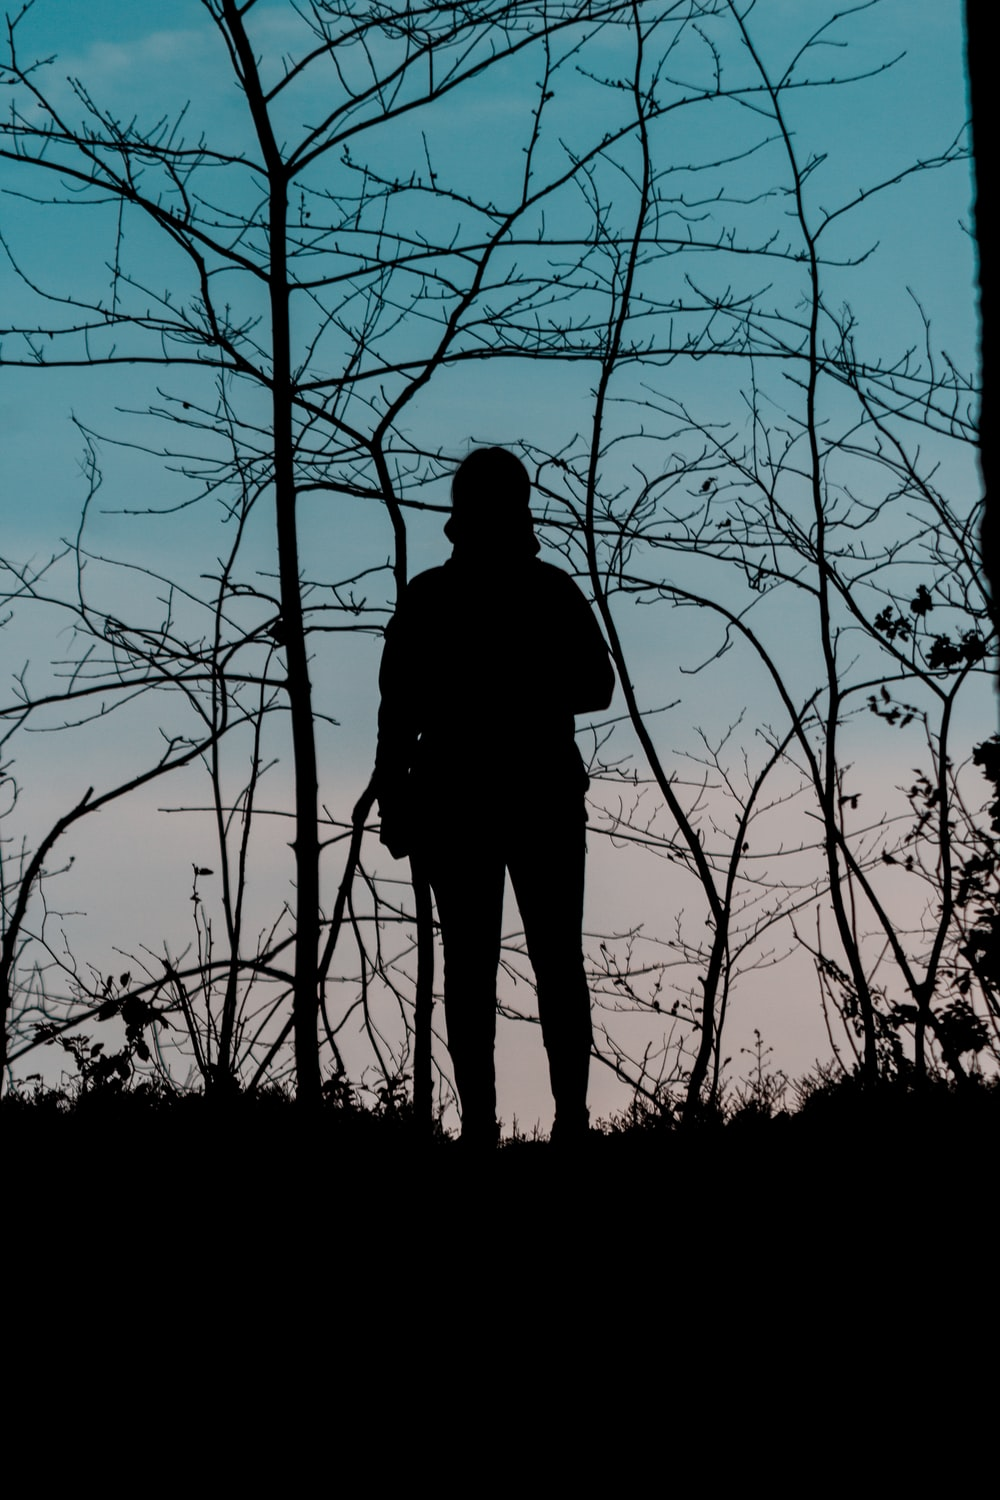 silhouette of woman photograph